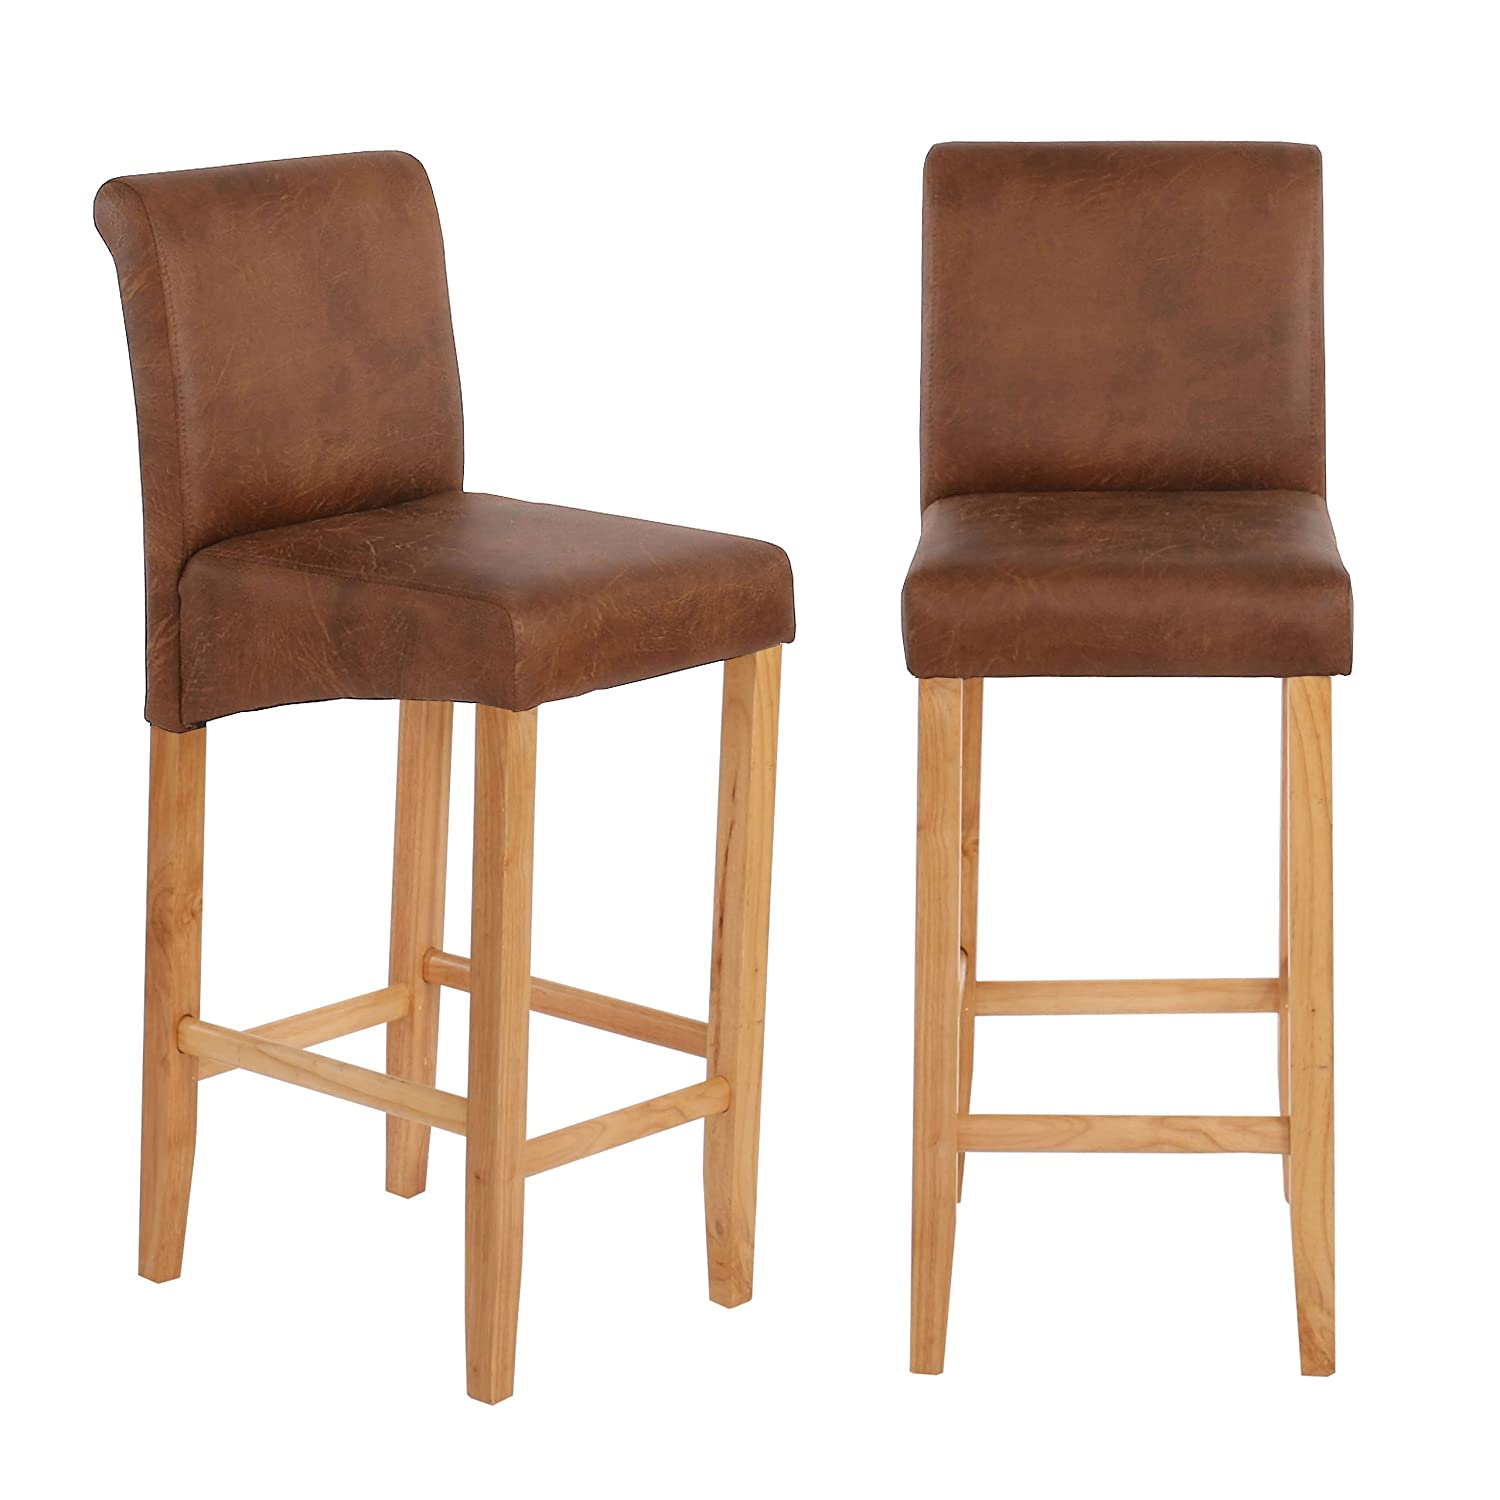 Lot de 2 tabourets de bar Lancy - similicuir ~ aspect daim marron - pieds clairs